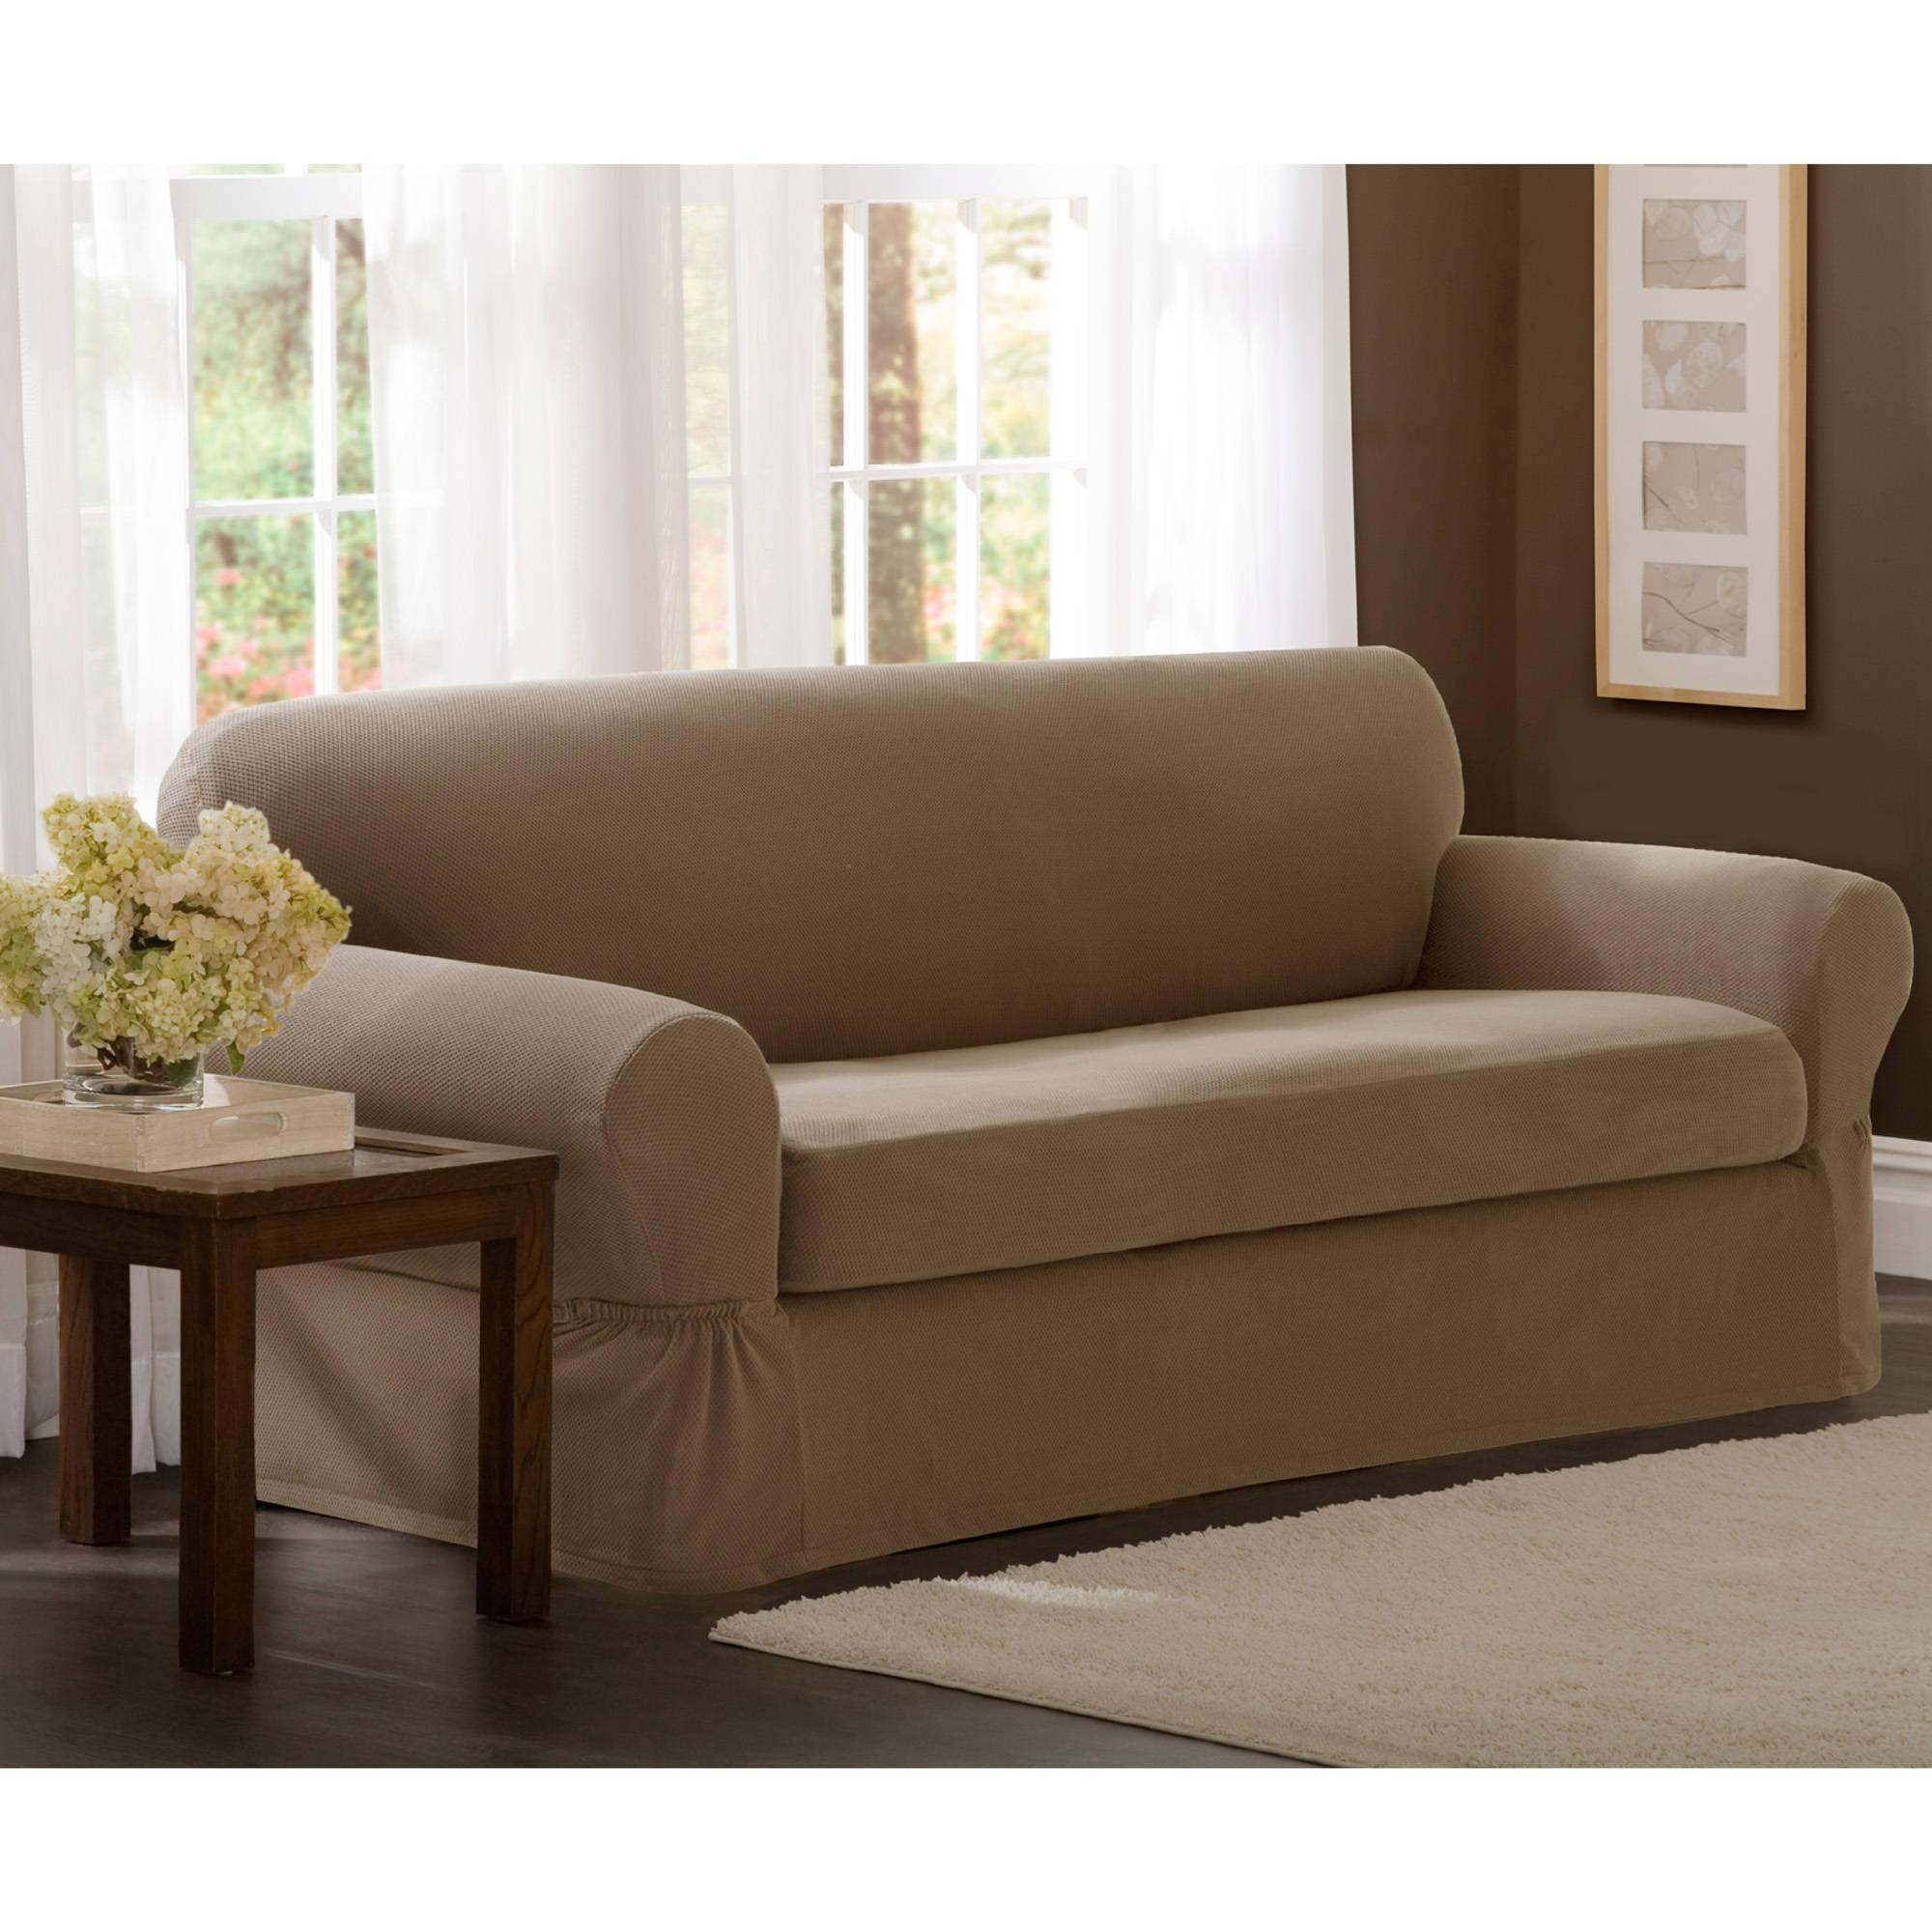 Maytex Stretch 2 Piece Sofa Slipcover – Walmart With Regard To Canvas Sofa Slipcovers (View 12 of 20)